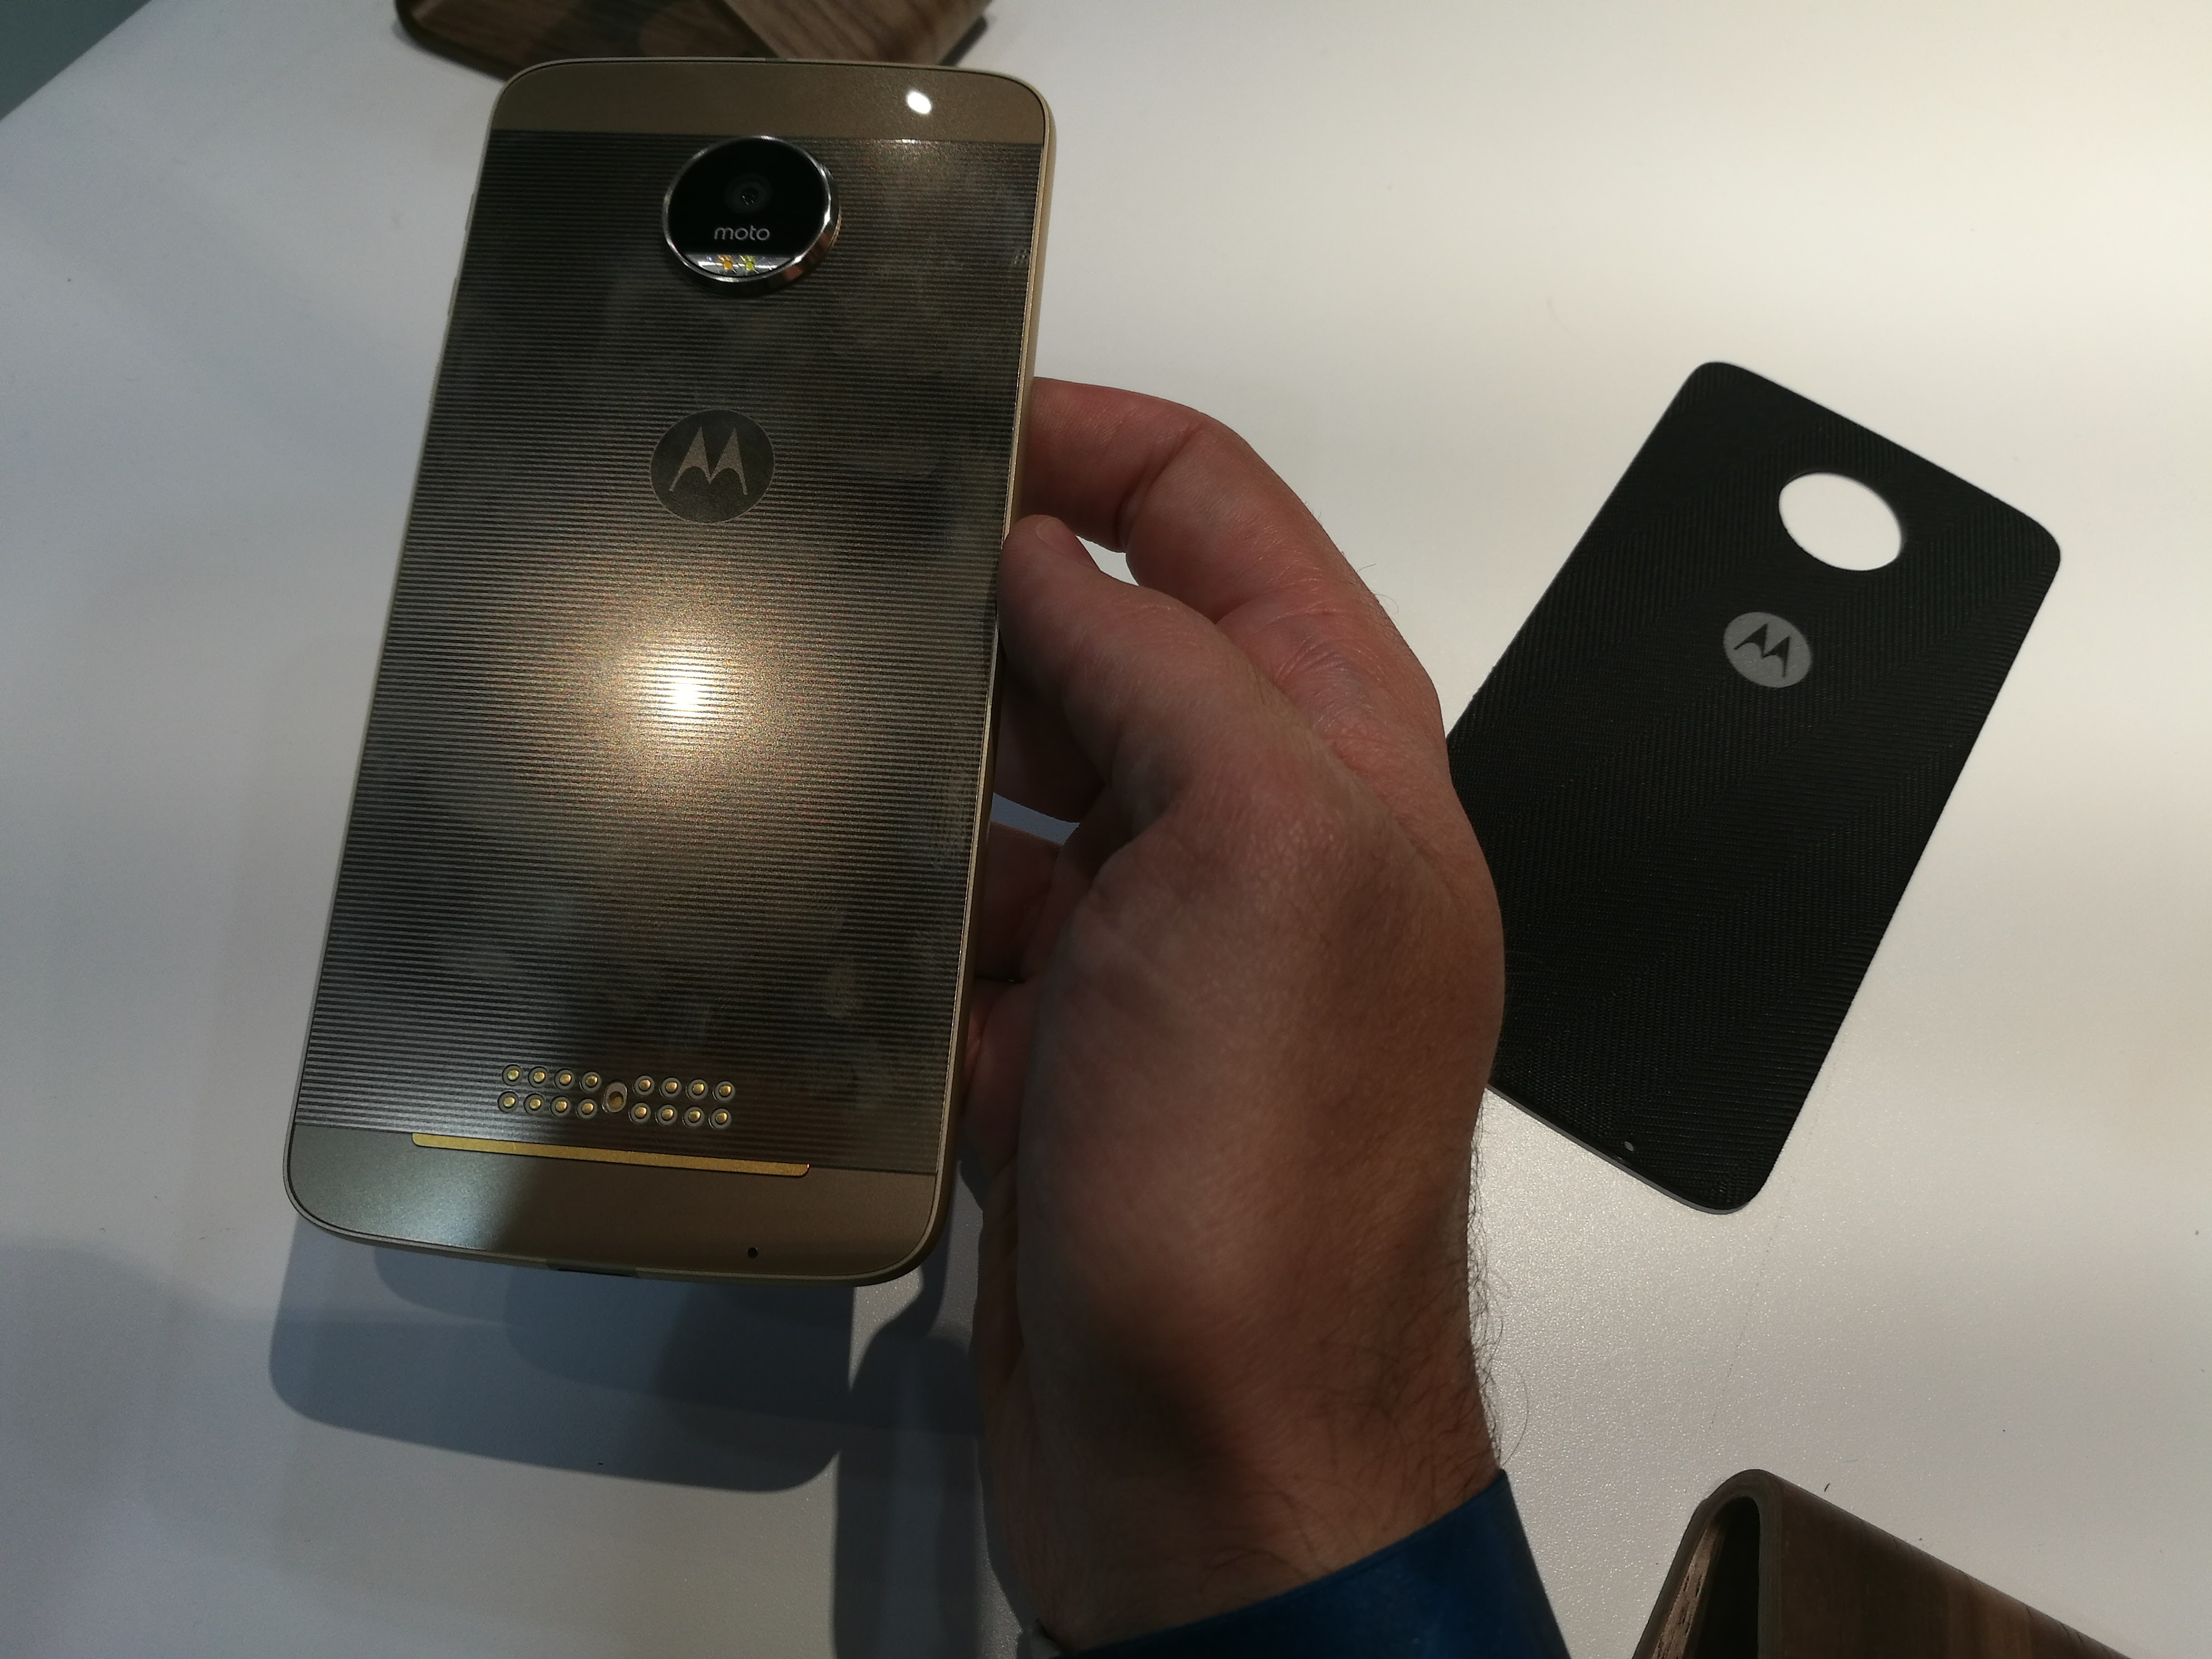 Lenovo's Moto Z, and an attachable backing on the right.